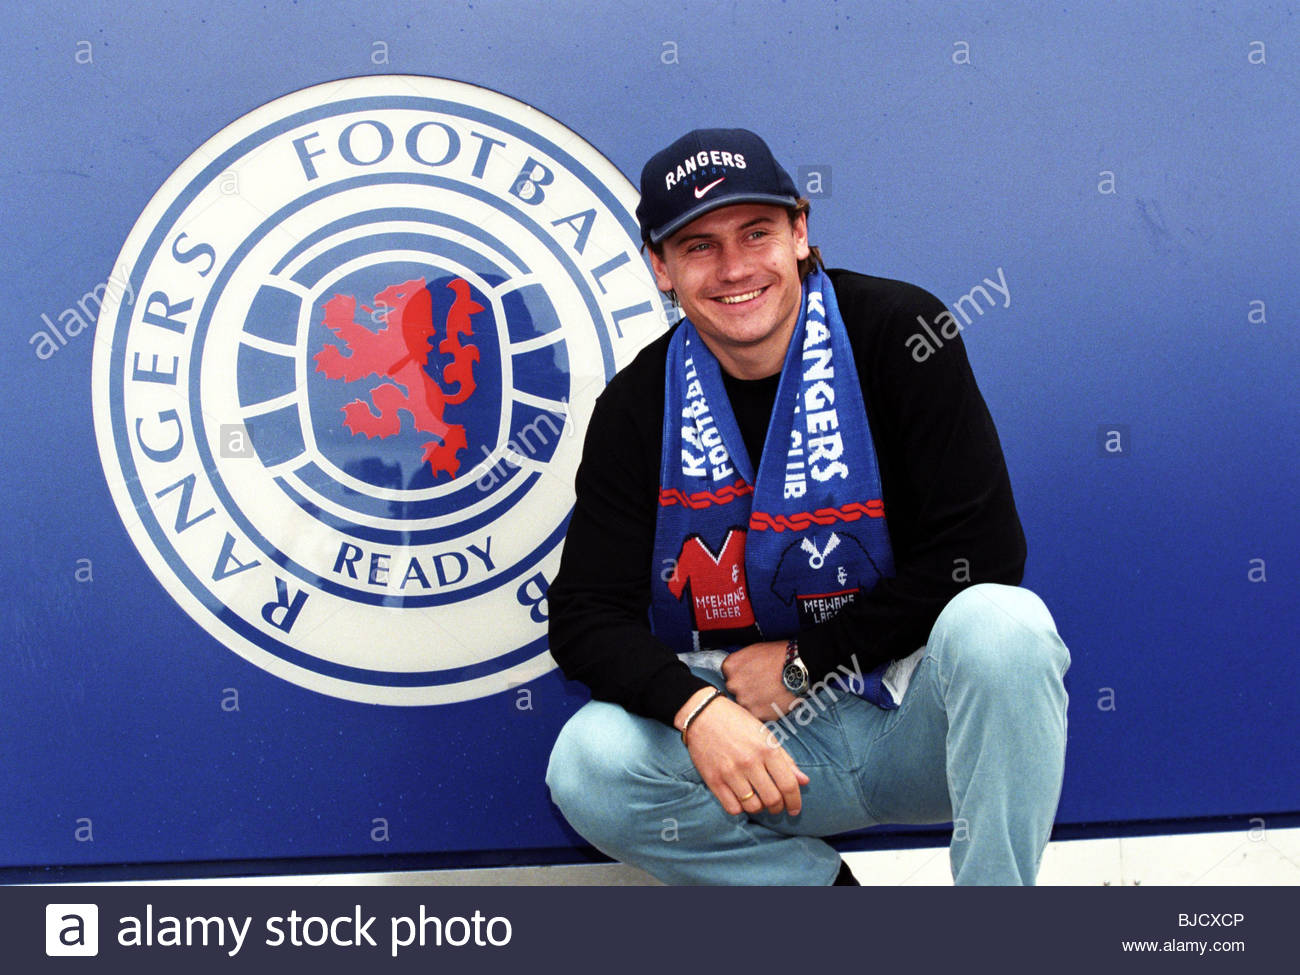 15/07/98 IBROX - GLASGOW New Rangers signing Andrei Kanchelskis outside the club's Ibrox superstore. - Stock Image